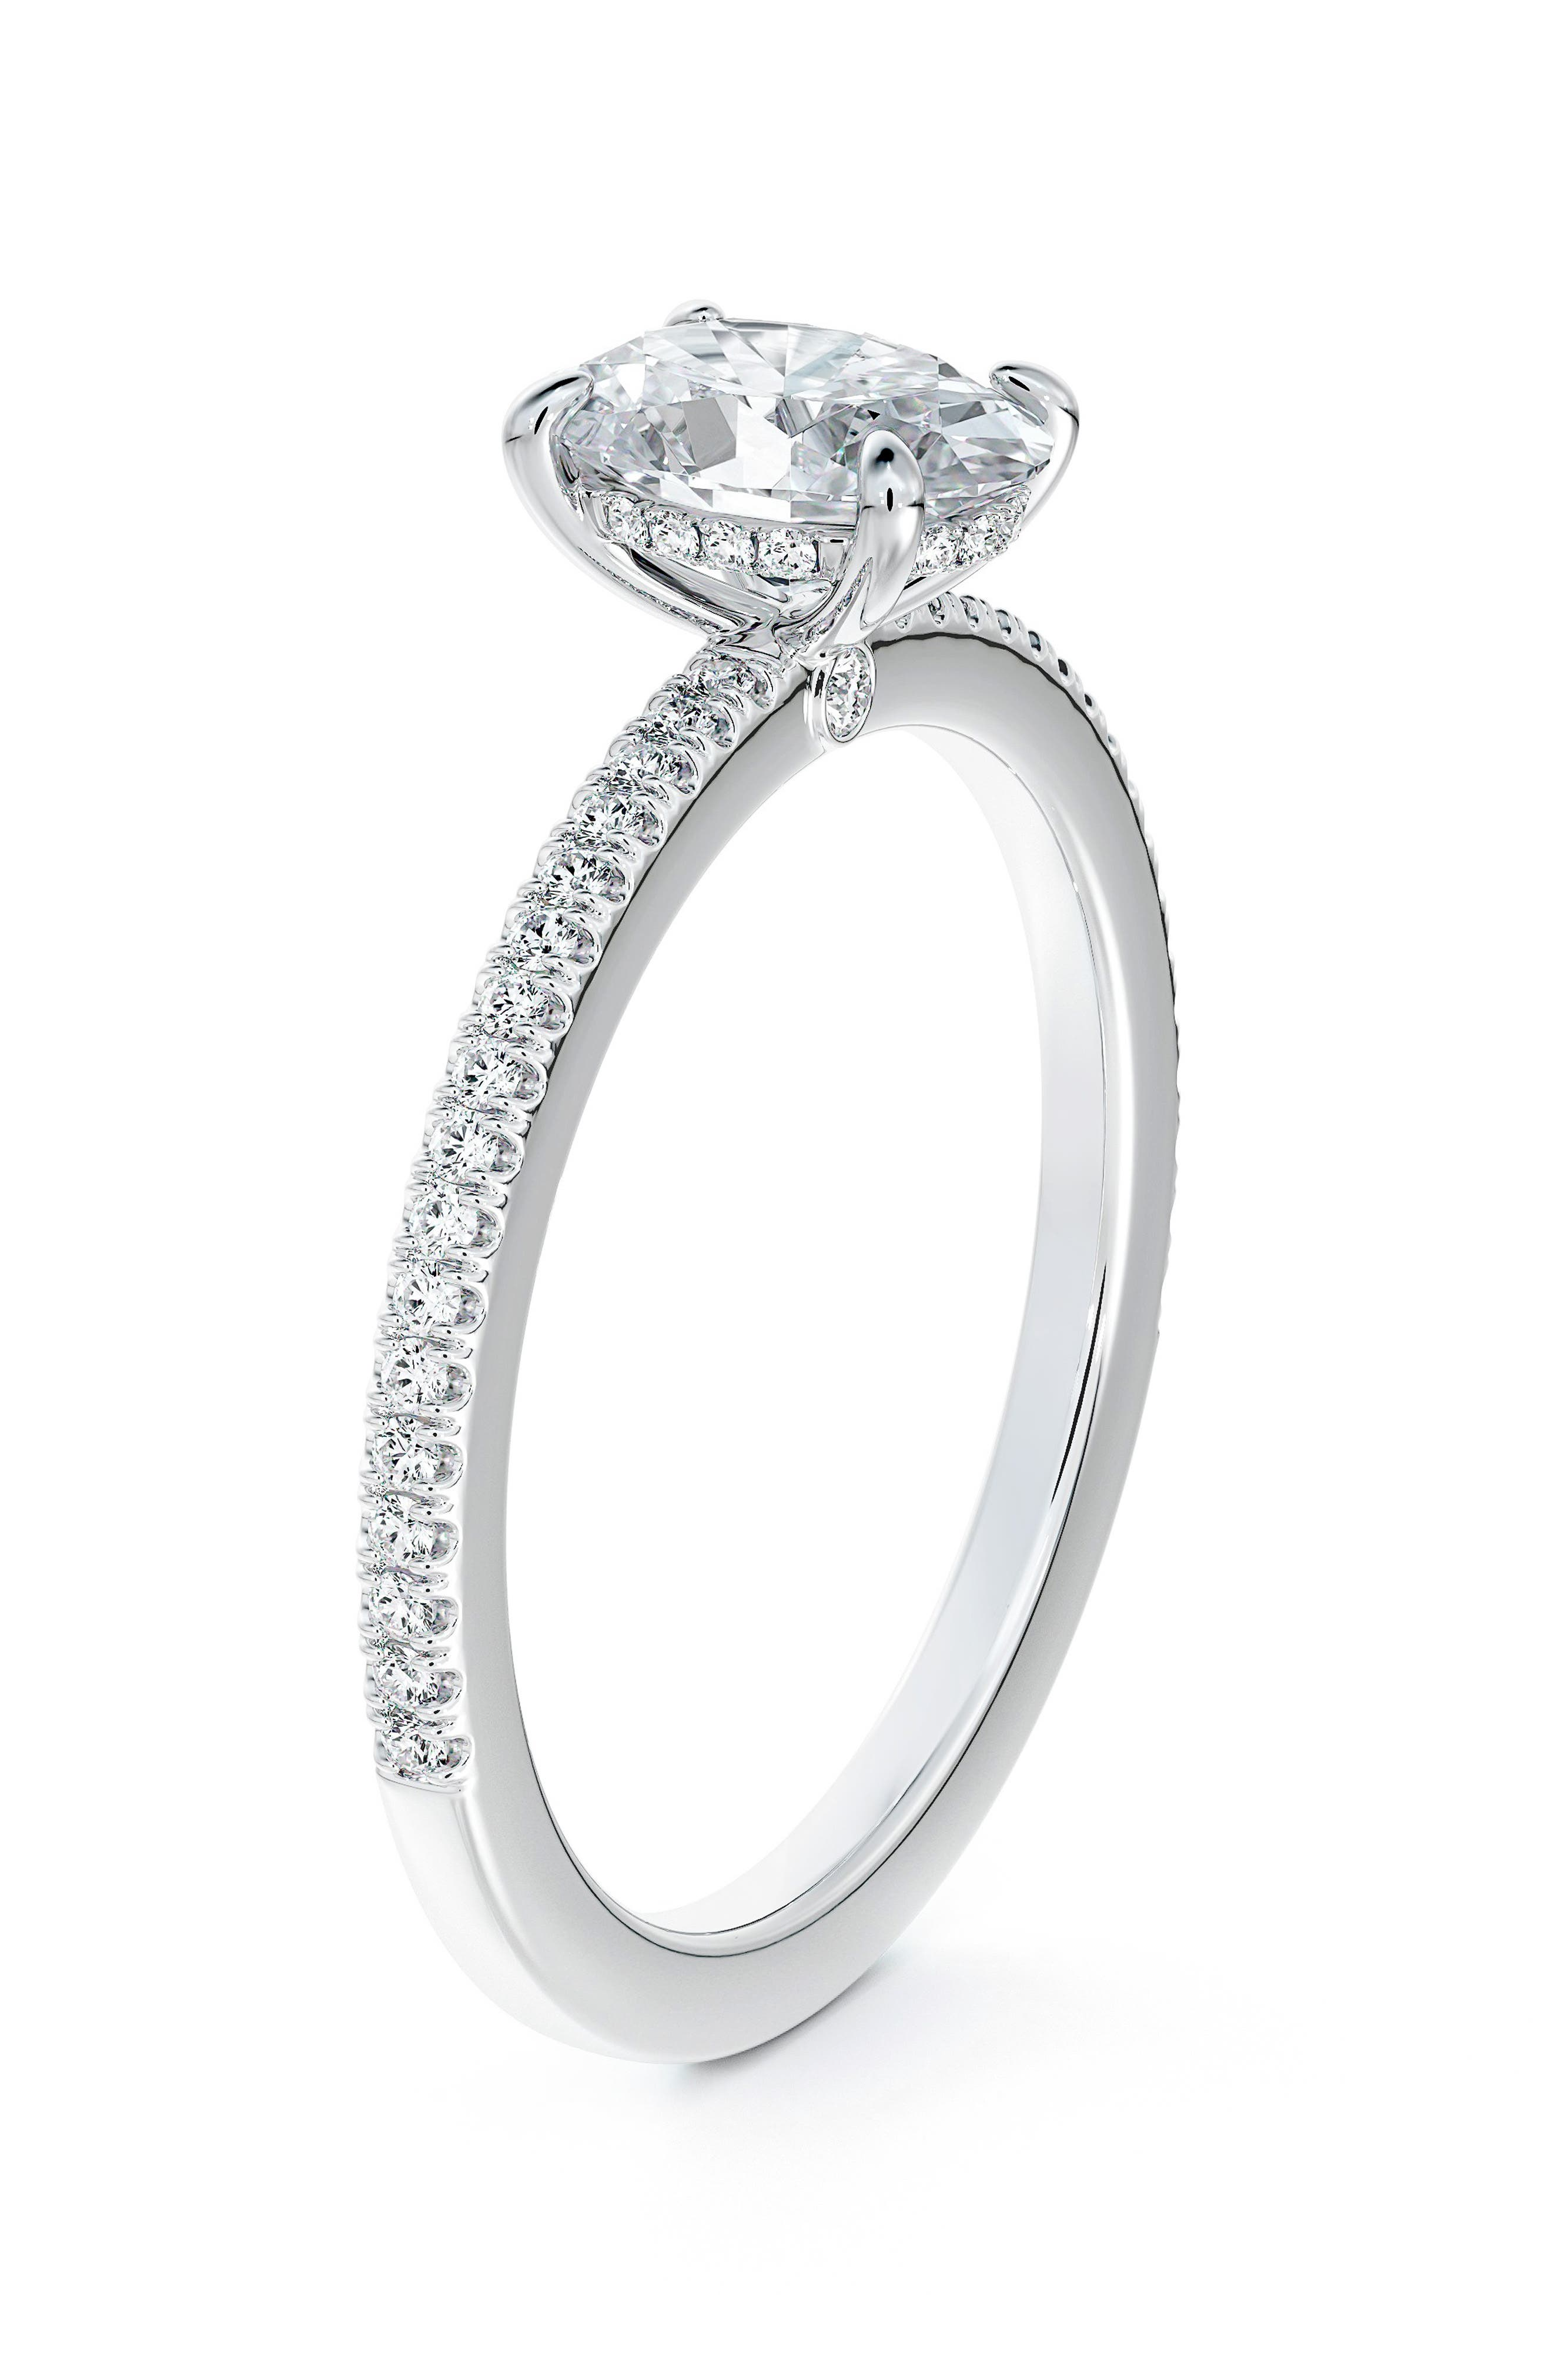 X Micaela Simply Solitaire Oval Diamond Engagement Ring With Diamond Band